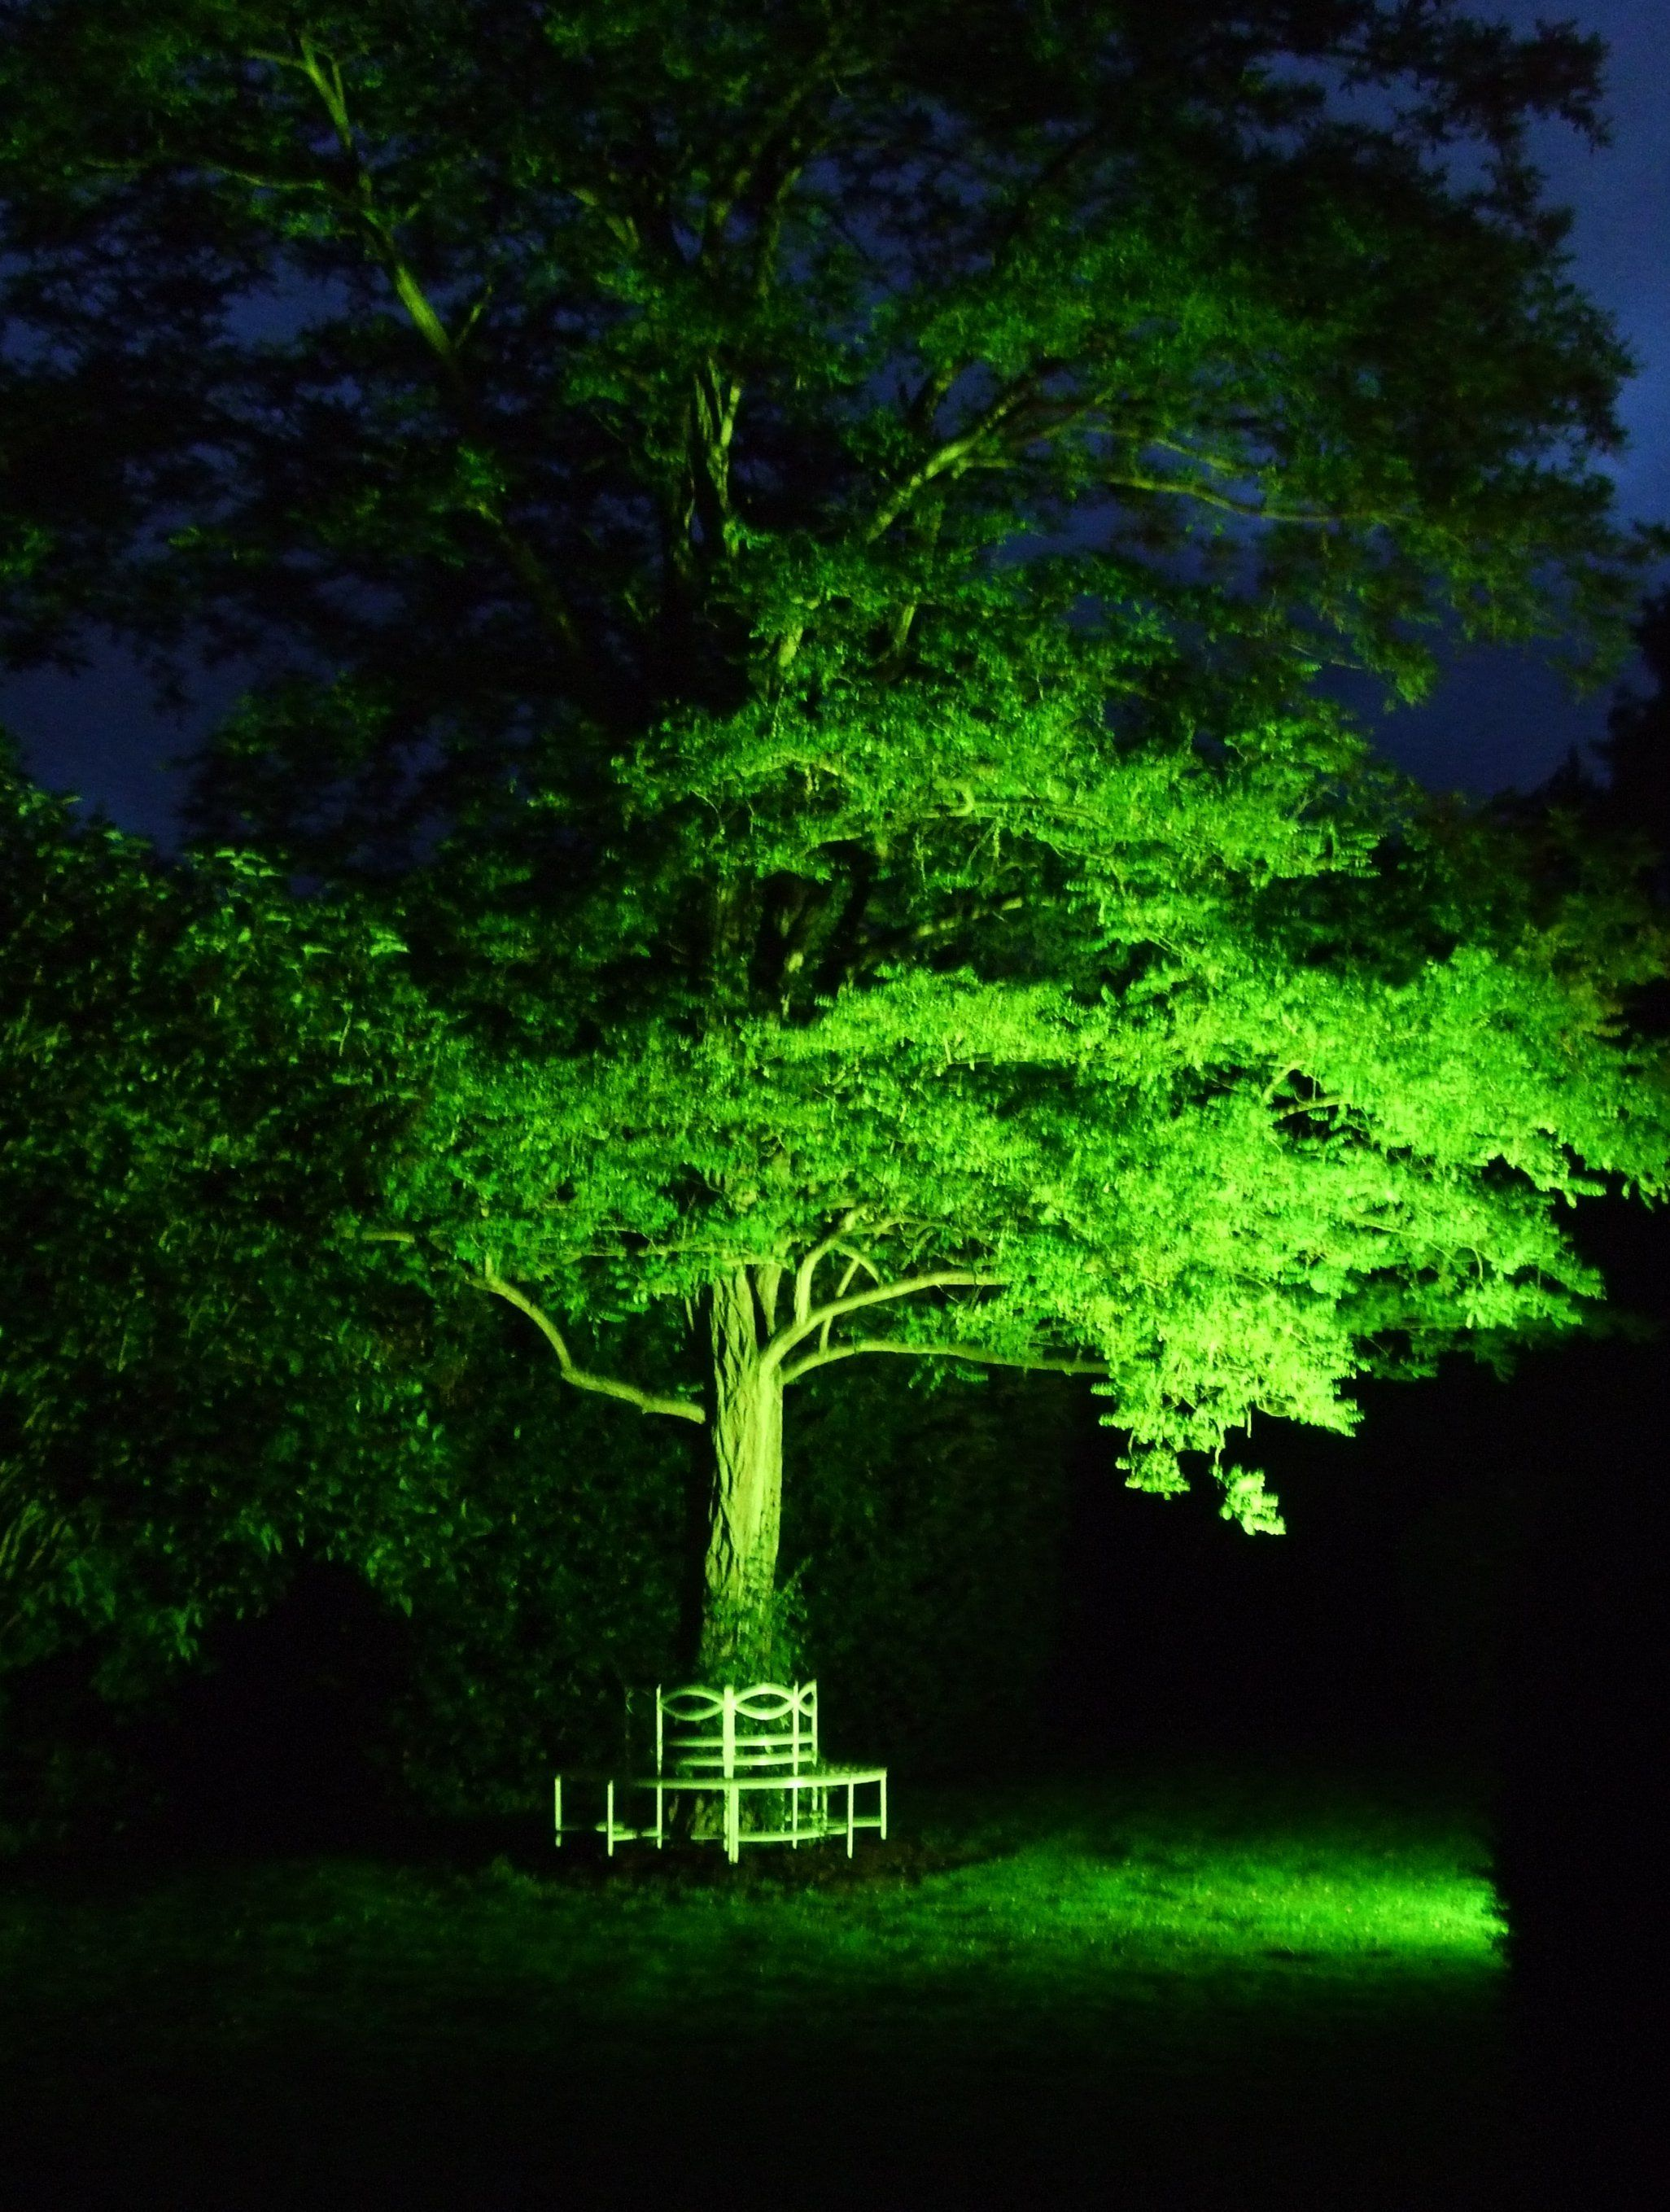 Outside wedding and event decoration- Uplighting to trees either ...